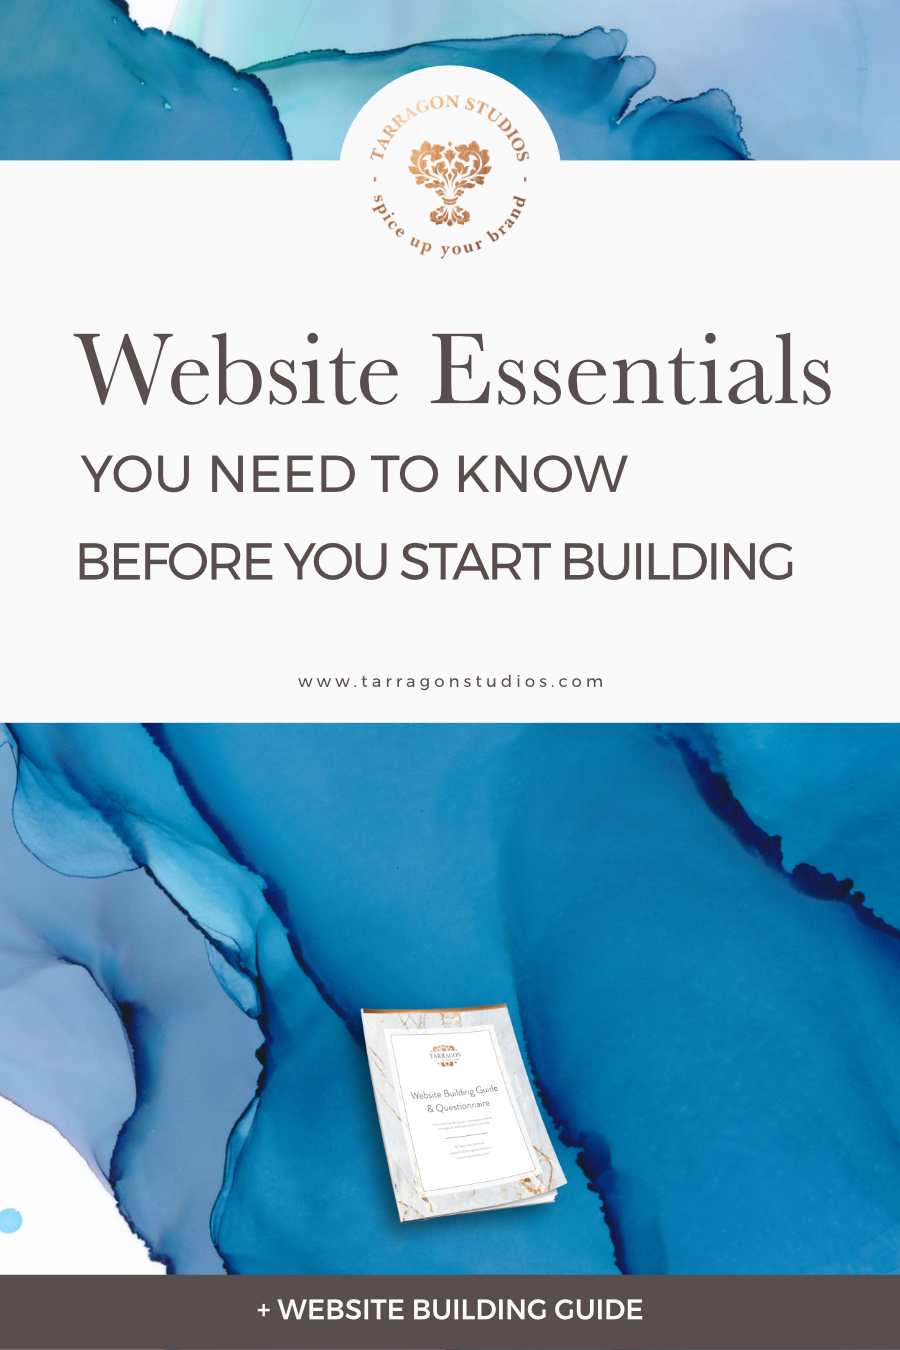 Website Essentials You Need to Know Before You Start Building - How does a Website Work? What Platform Should you use? What should you put on your website? Discover what you need to know about starting a website for your business! >> #website #squarespace #smallbusiness